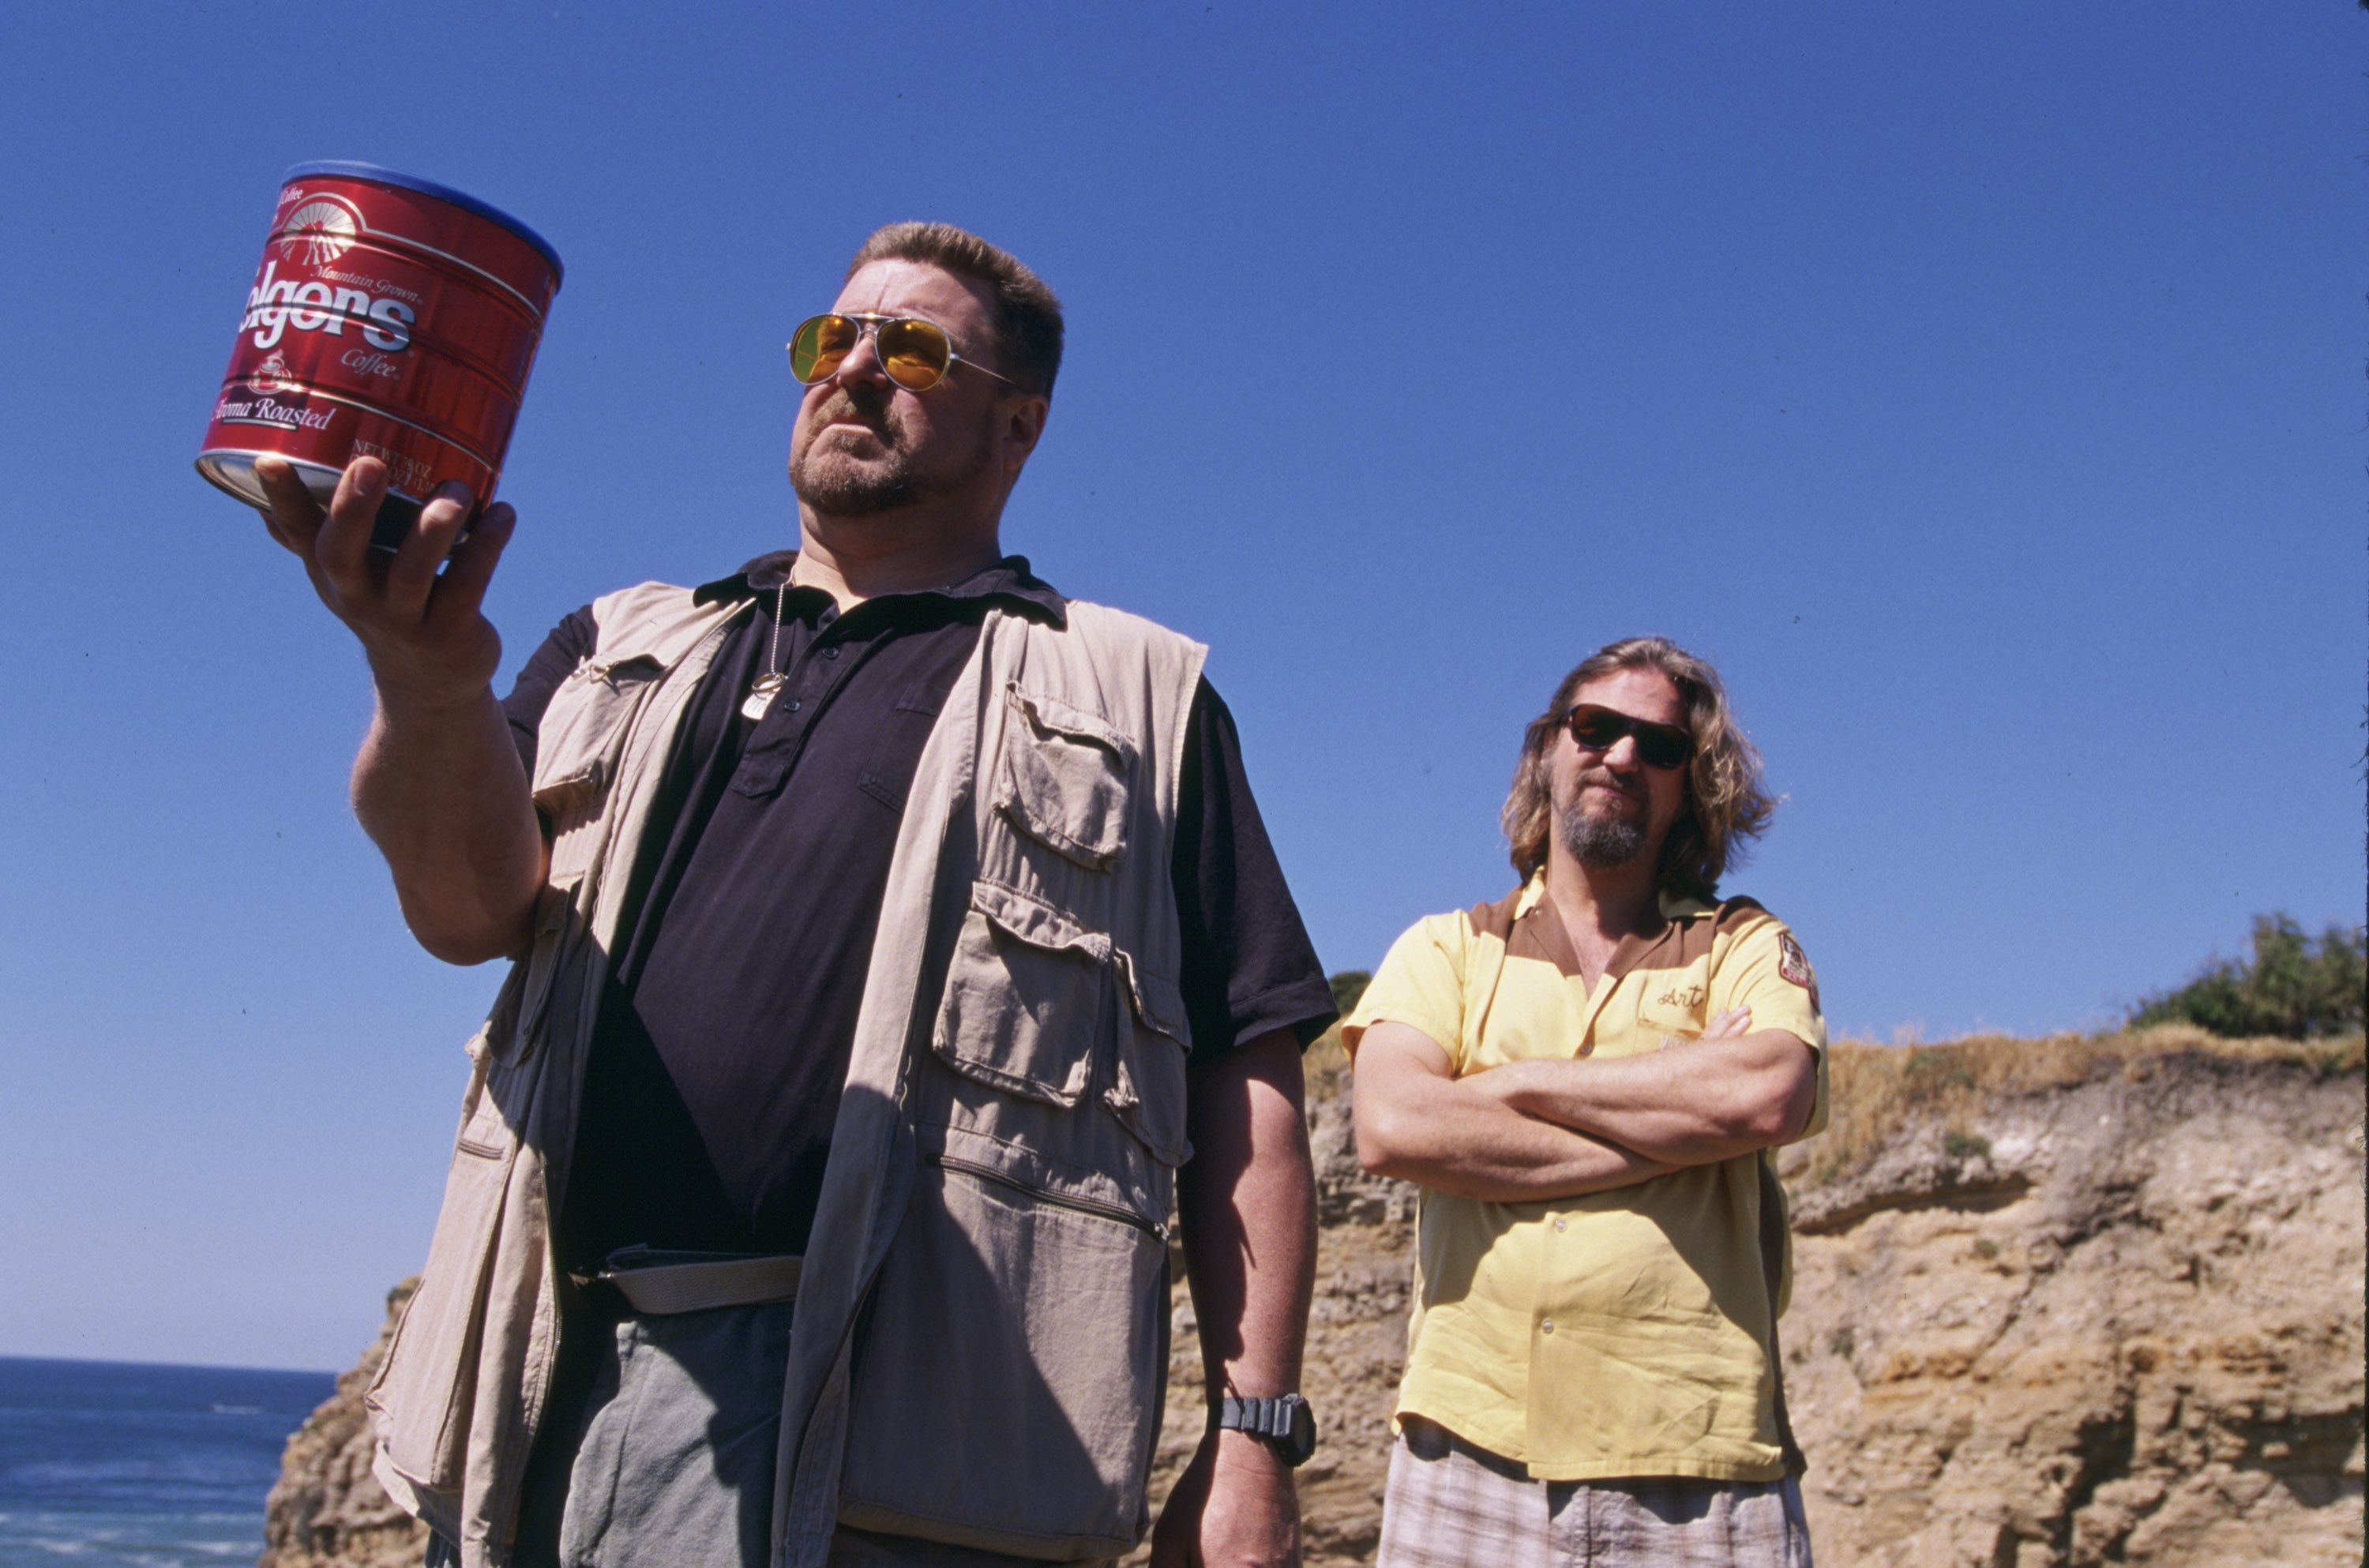 The Big Lebowski bowls back into cinemas for its 20th anniversary